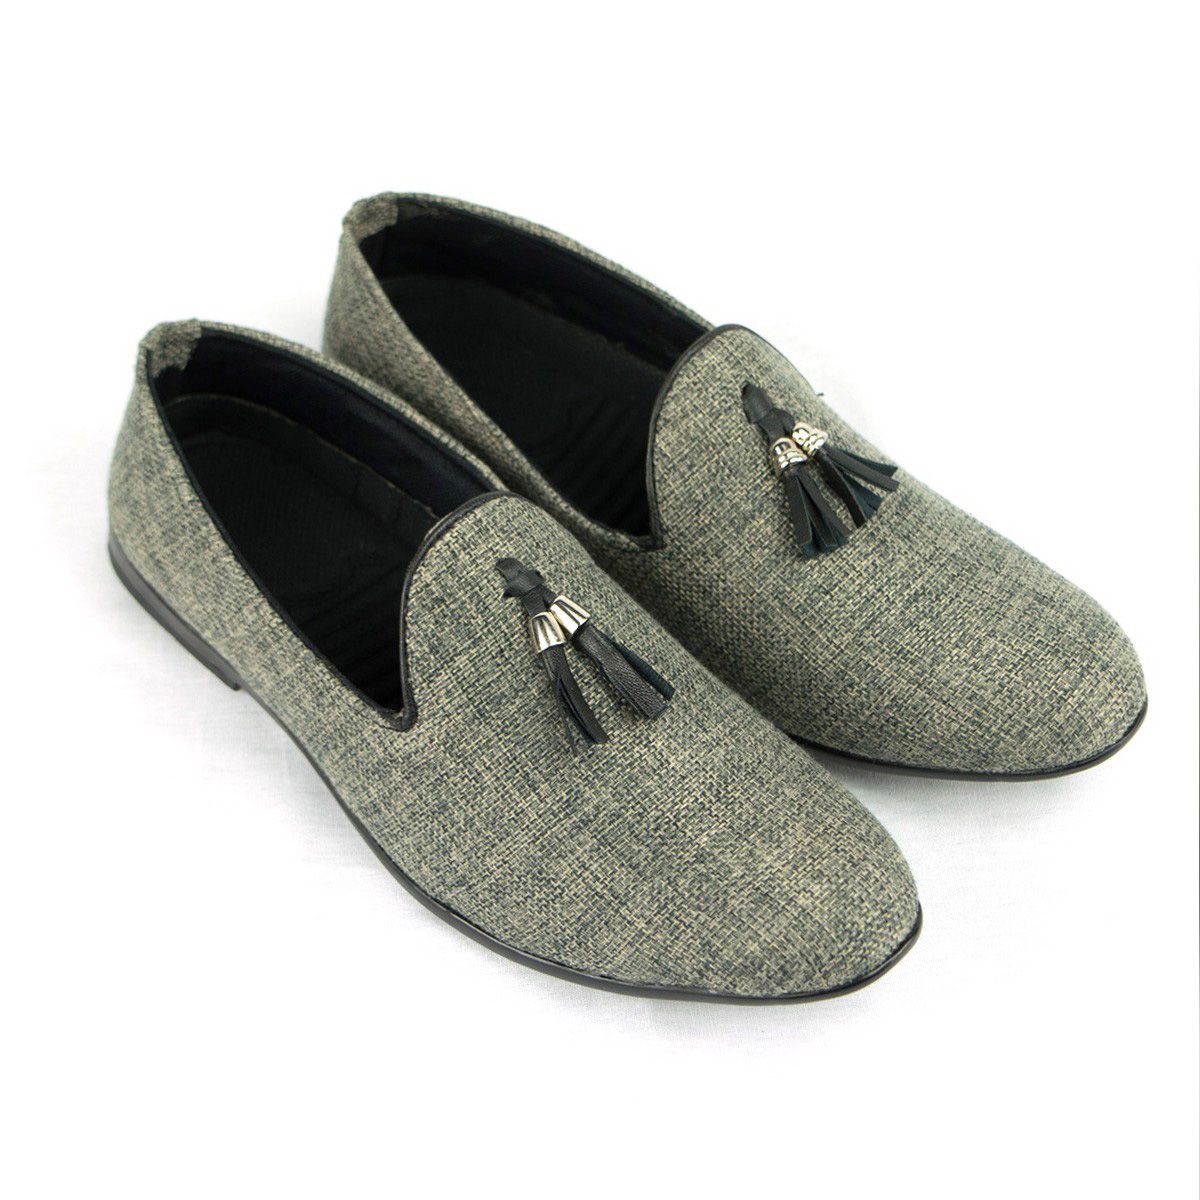 Trendy Pumpy Shoes casuals and Party shoe for Men